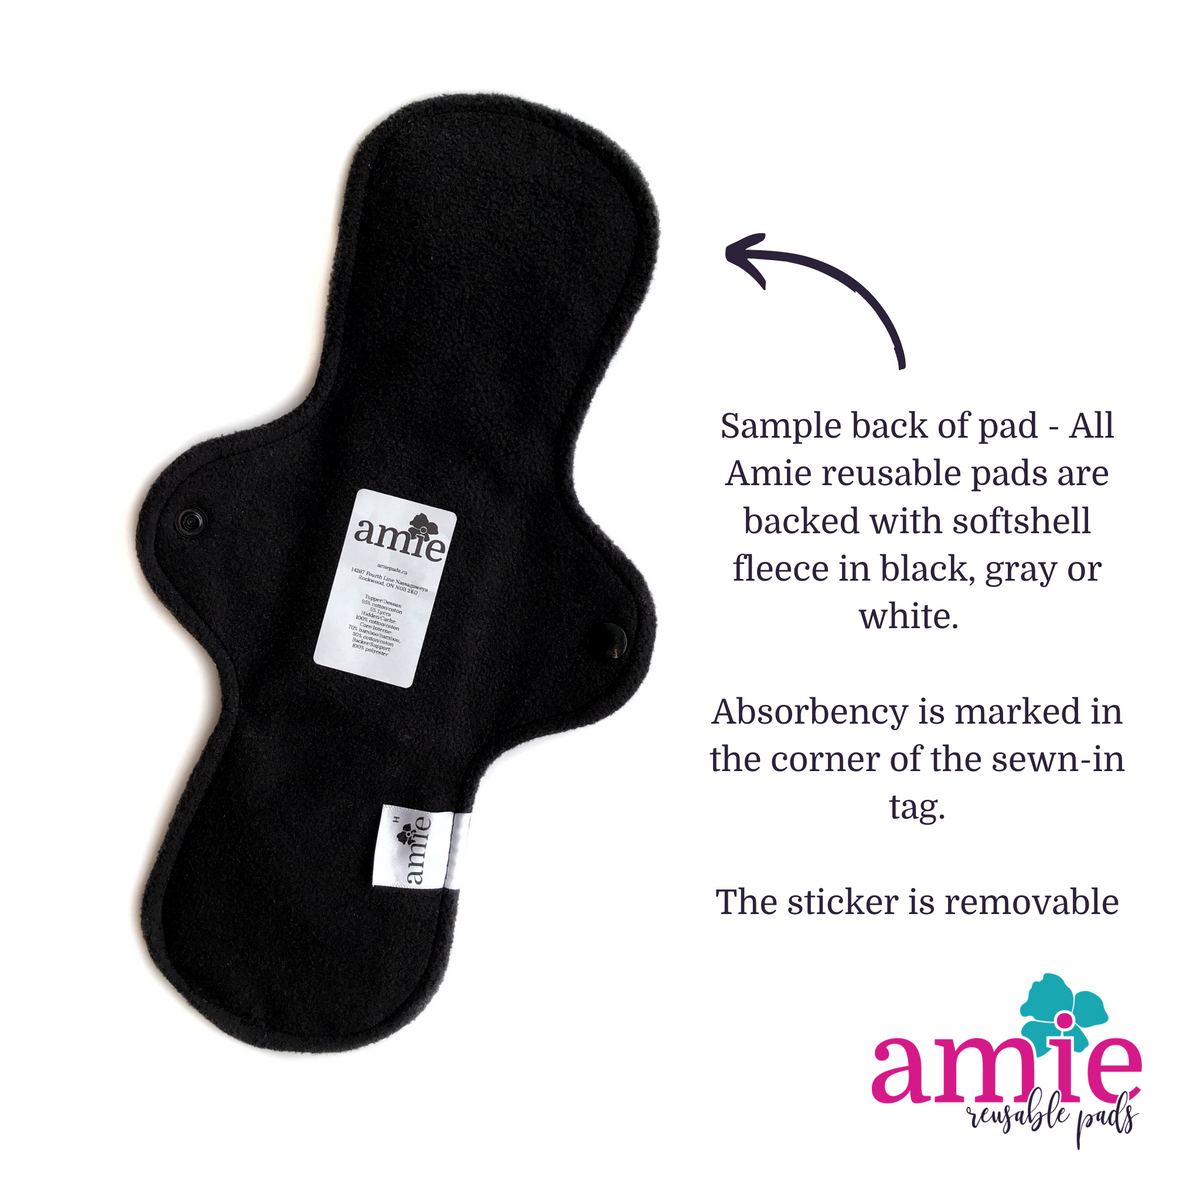 Sample back of an amie reusable pad showing softshell fleece, legally compliant removable sticker and label with absorbency marked